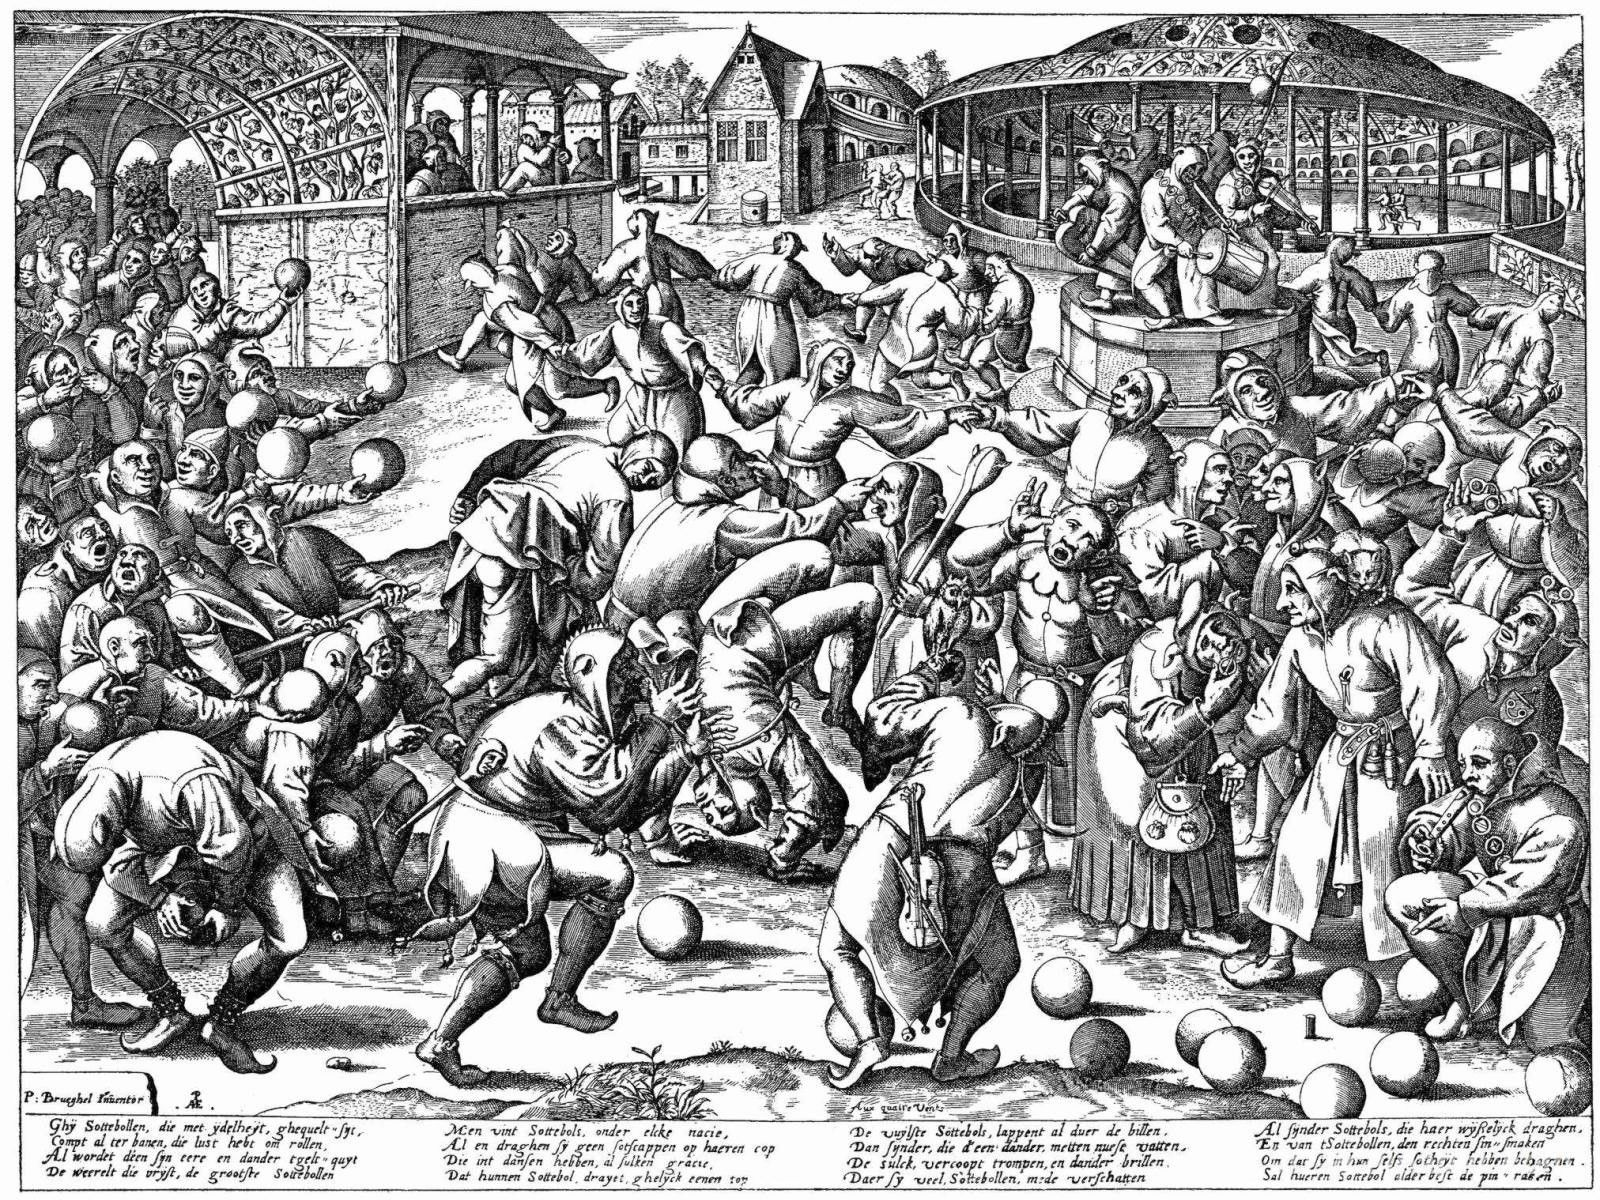 """Feast/Festival of Fools"" print engraved by Pieter van der Heyden after Bruegel, after 1570"